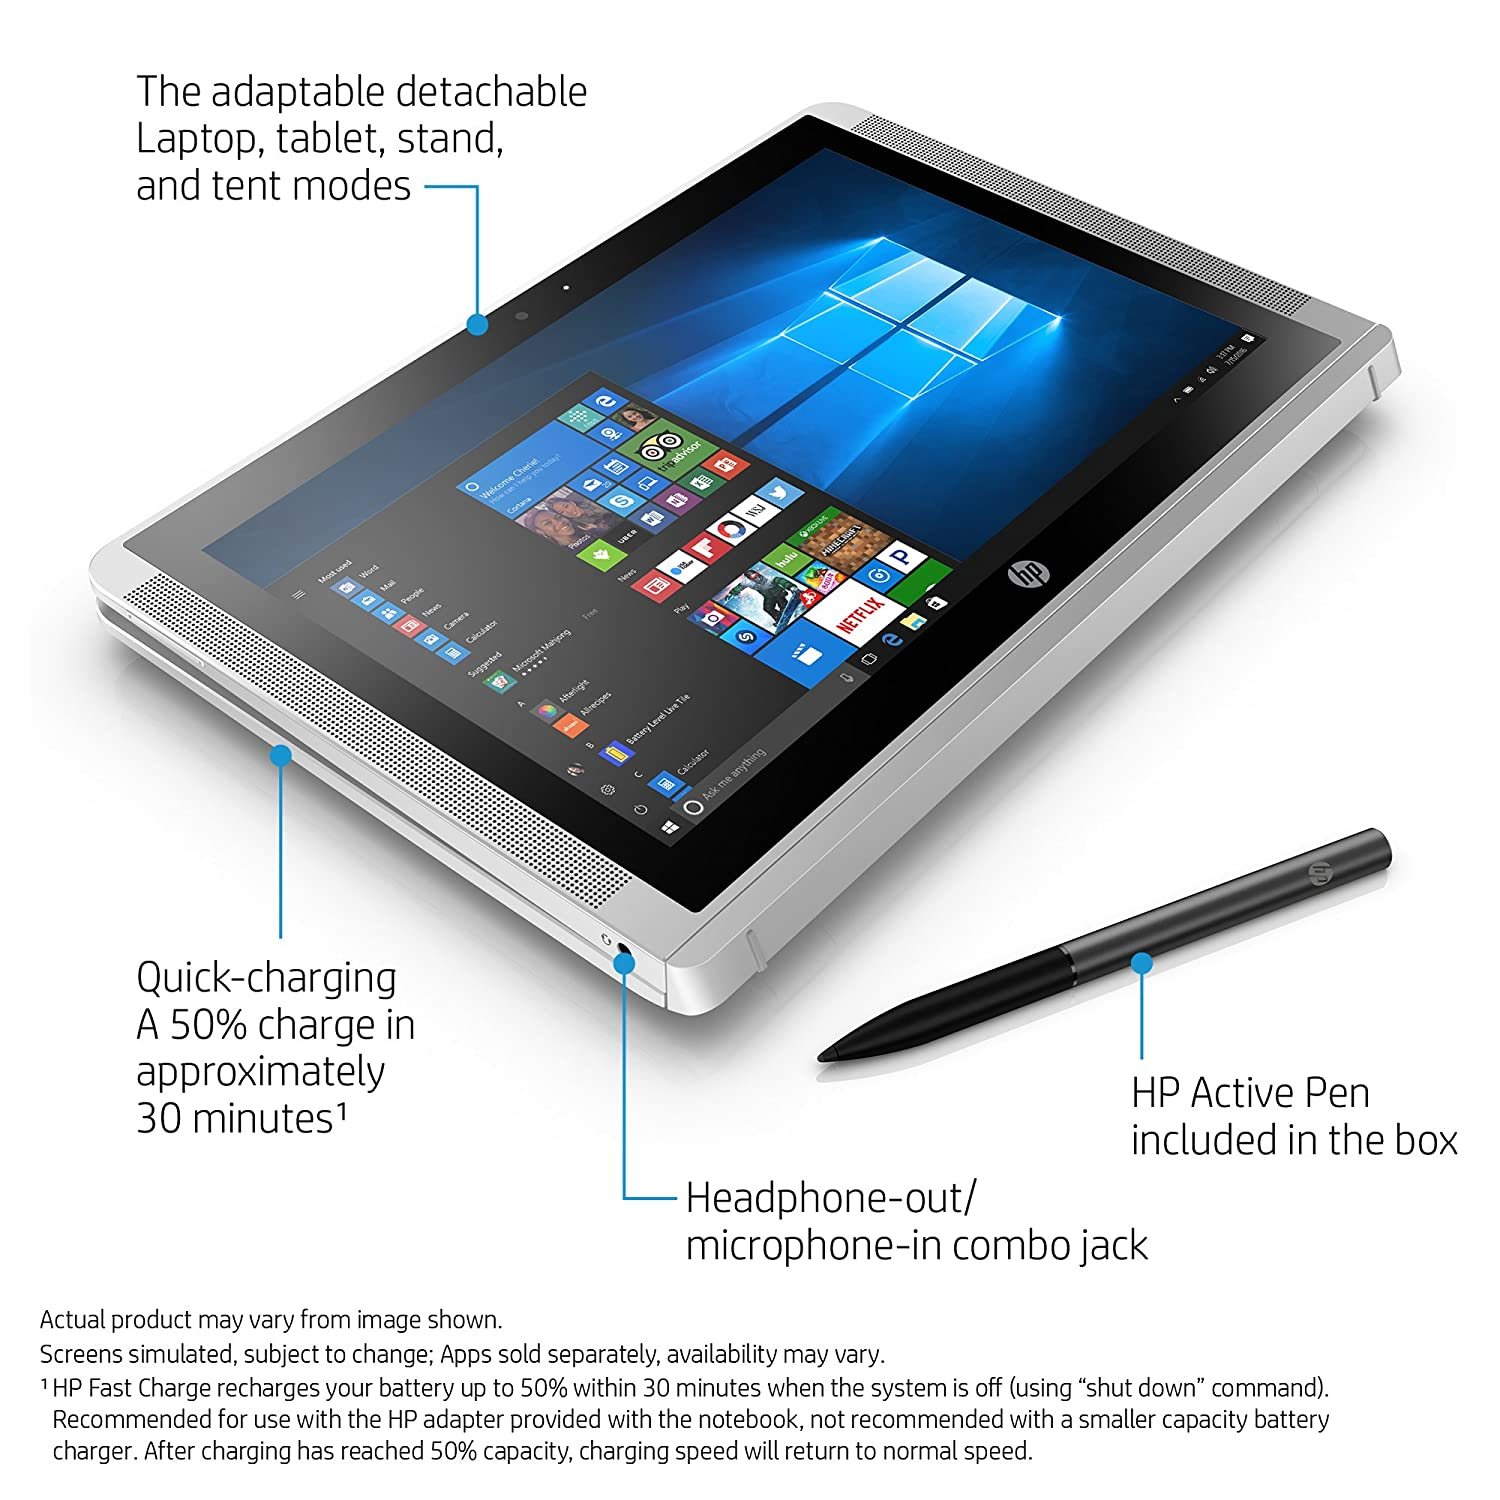 HP x2 10-inch Detachable Laptop with Stylus Pen, Intel Atom x5-Z8350, 2GB  RAM, 32GB eMMC, Windows 10 (10-p020nr, Silver)